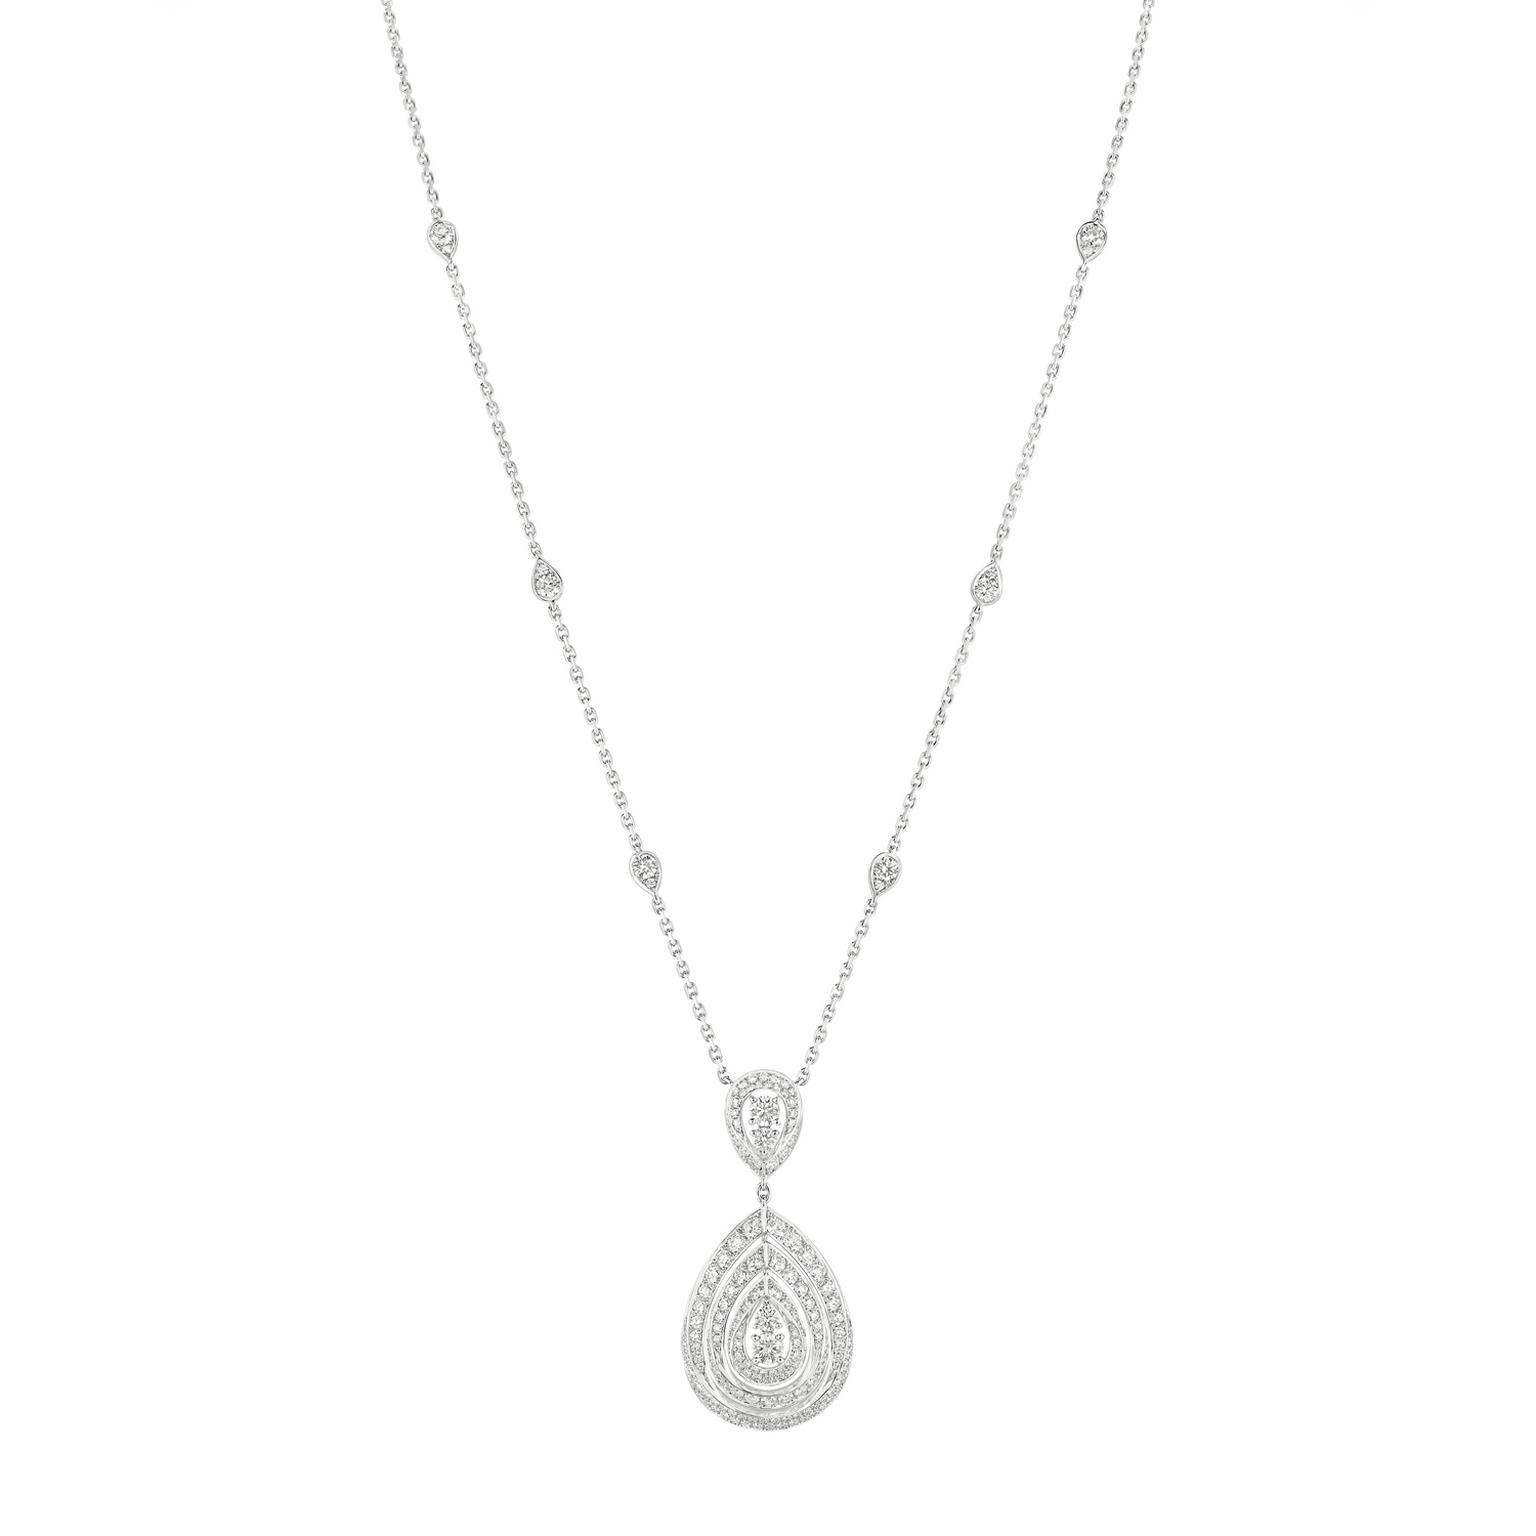 Chaumet Joséphine Rondes de Nuit diamond necklace in white gold